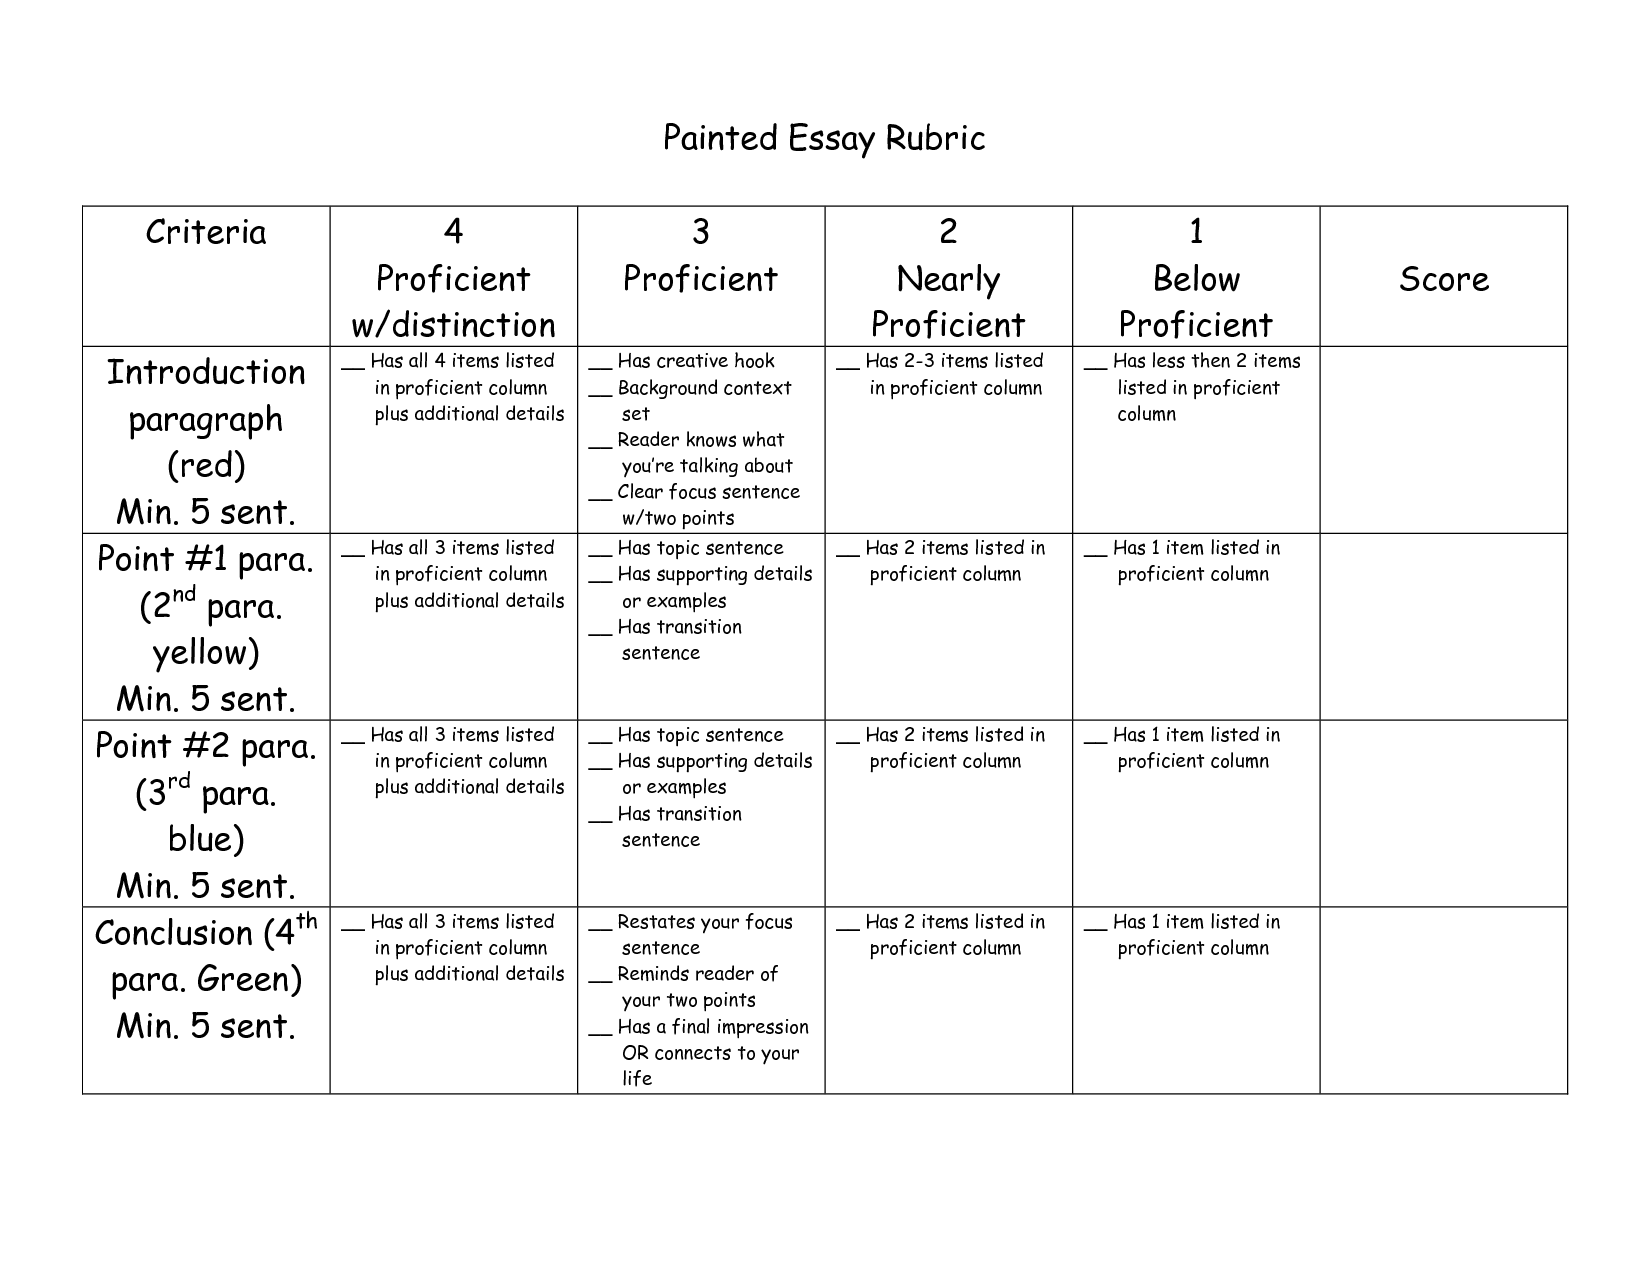 001 Painted Essay Rubric by noonans Writing lessons, Writing